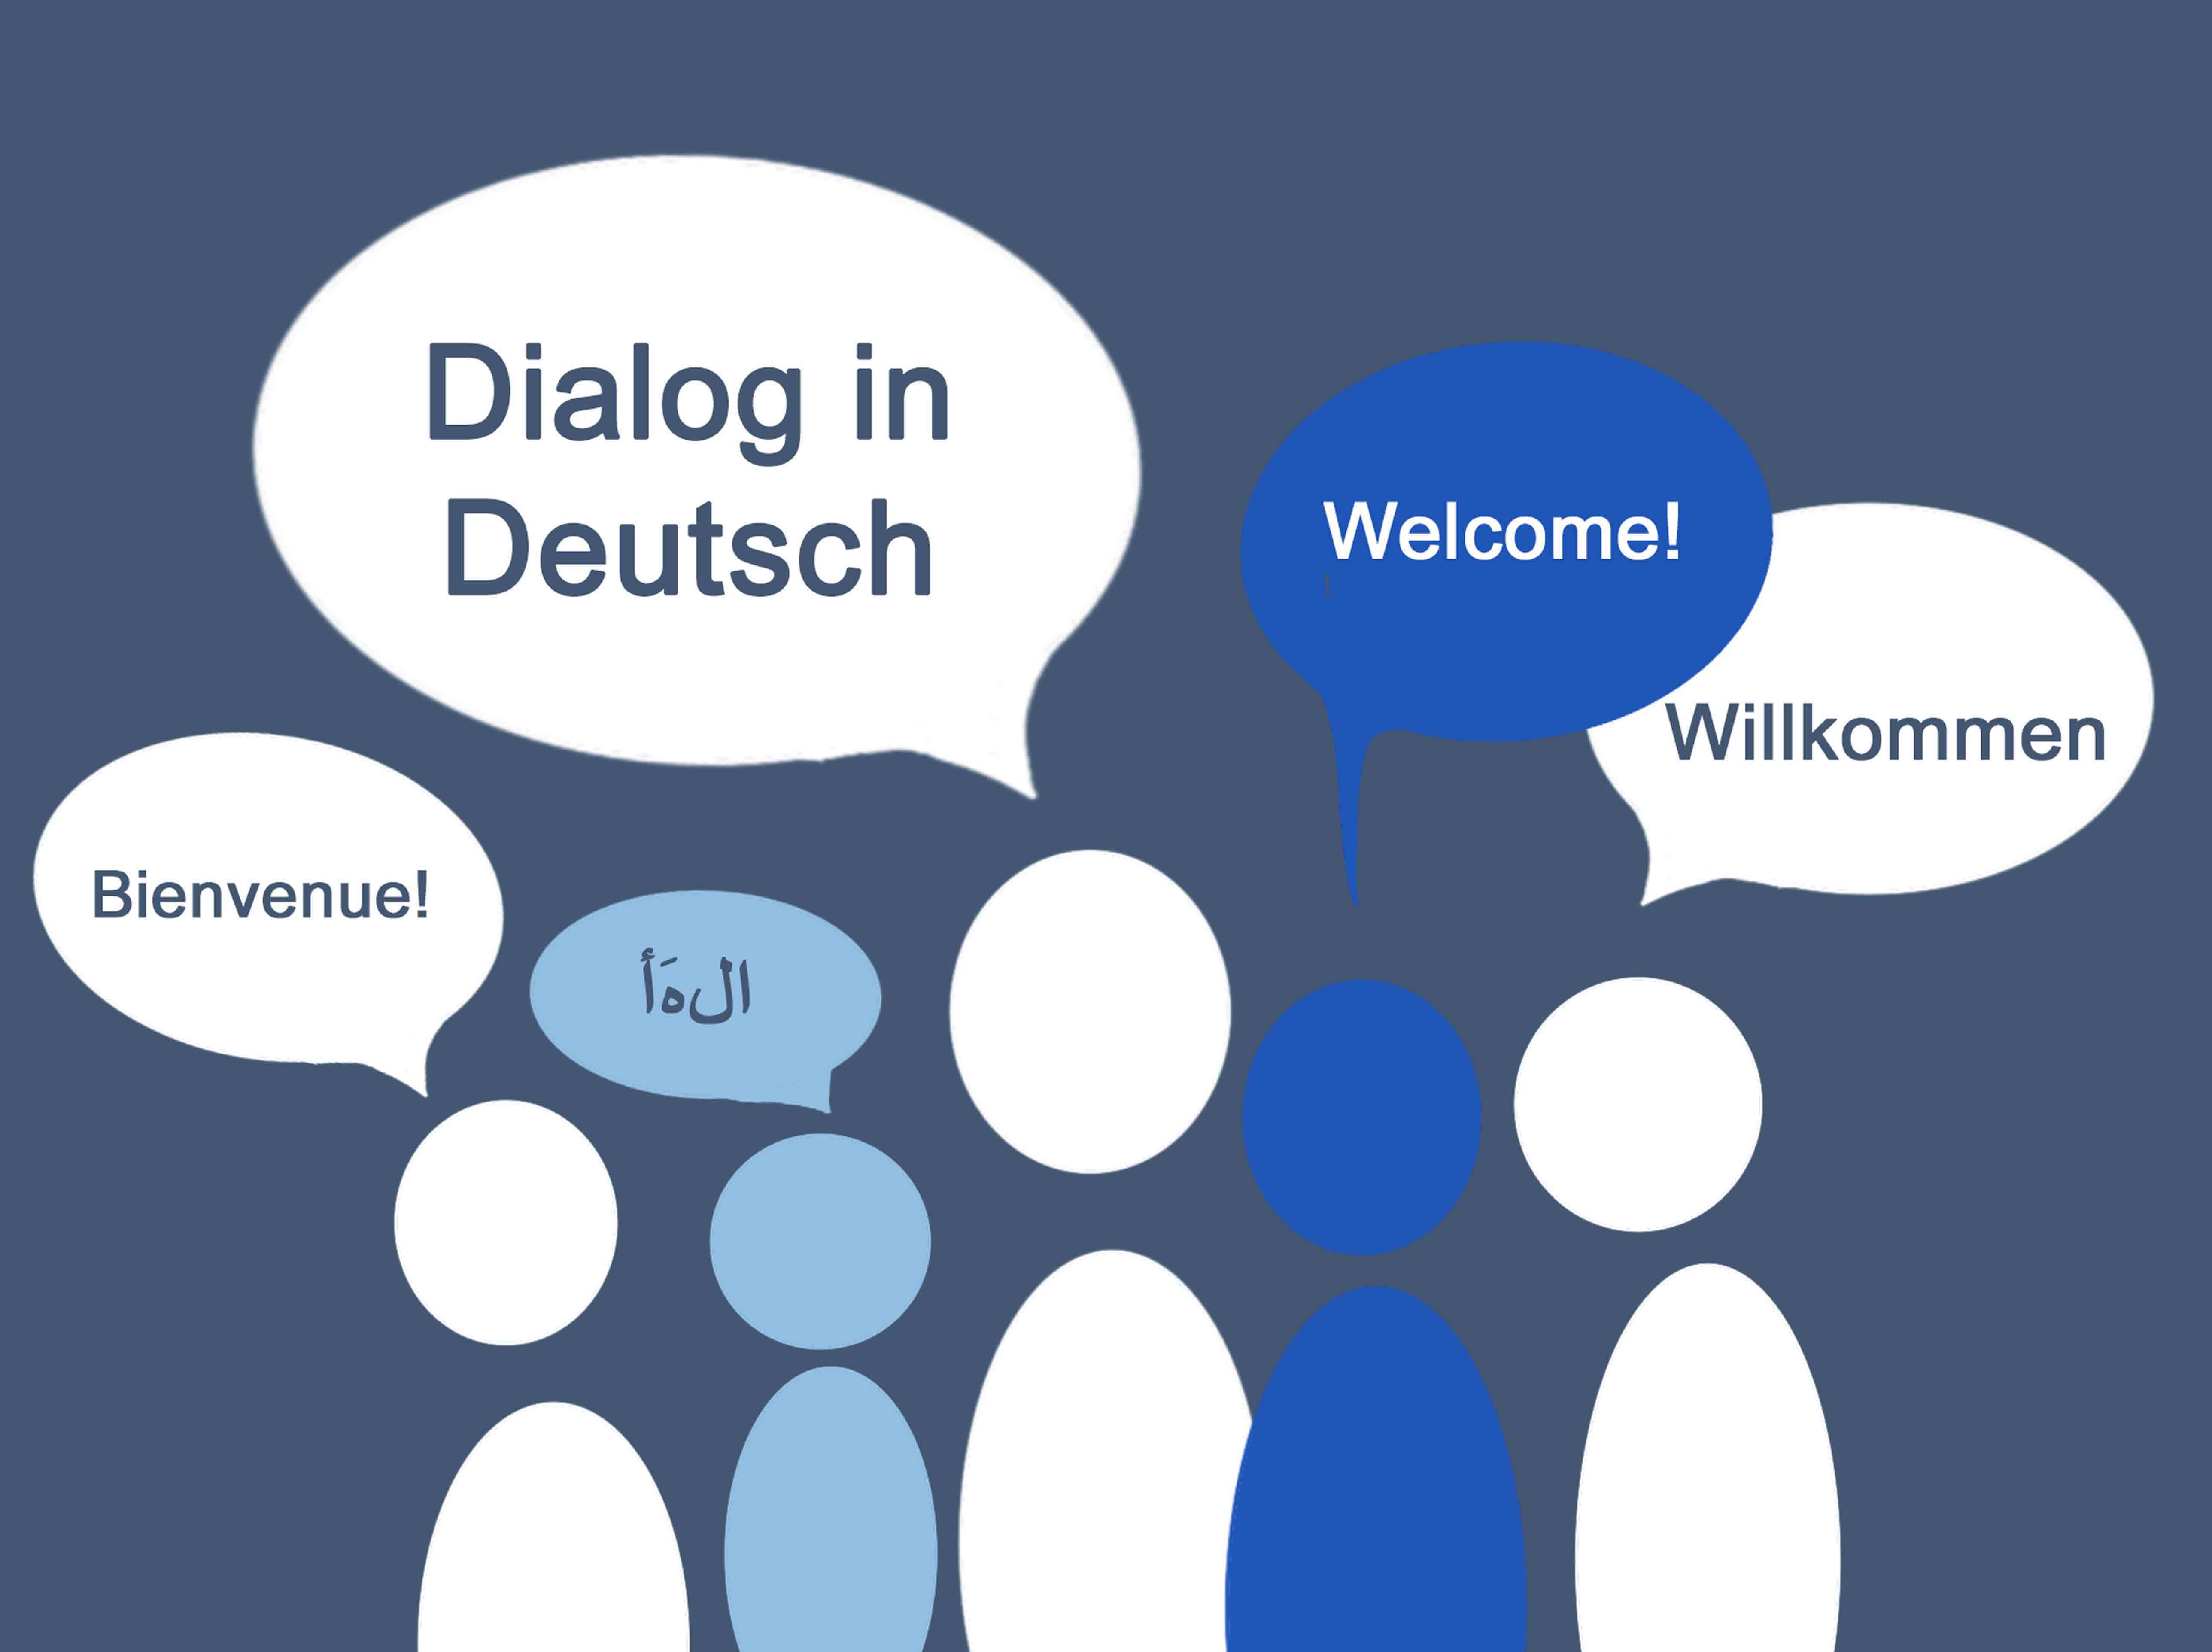 Dialog in Deutsch